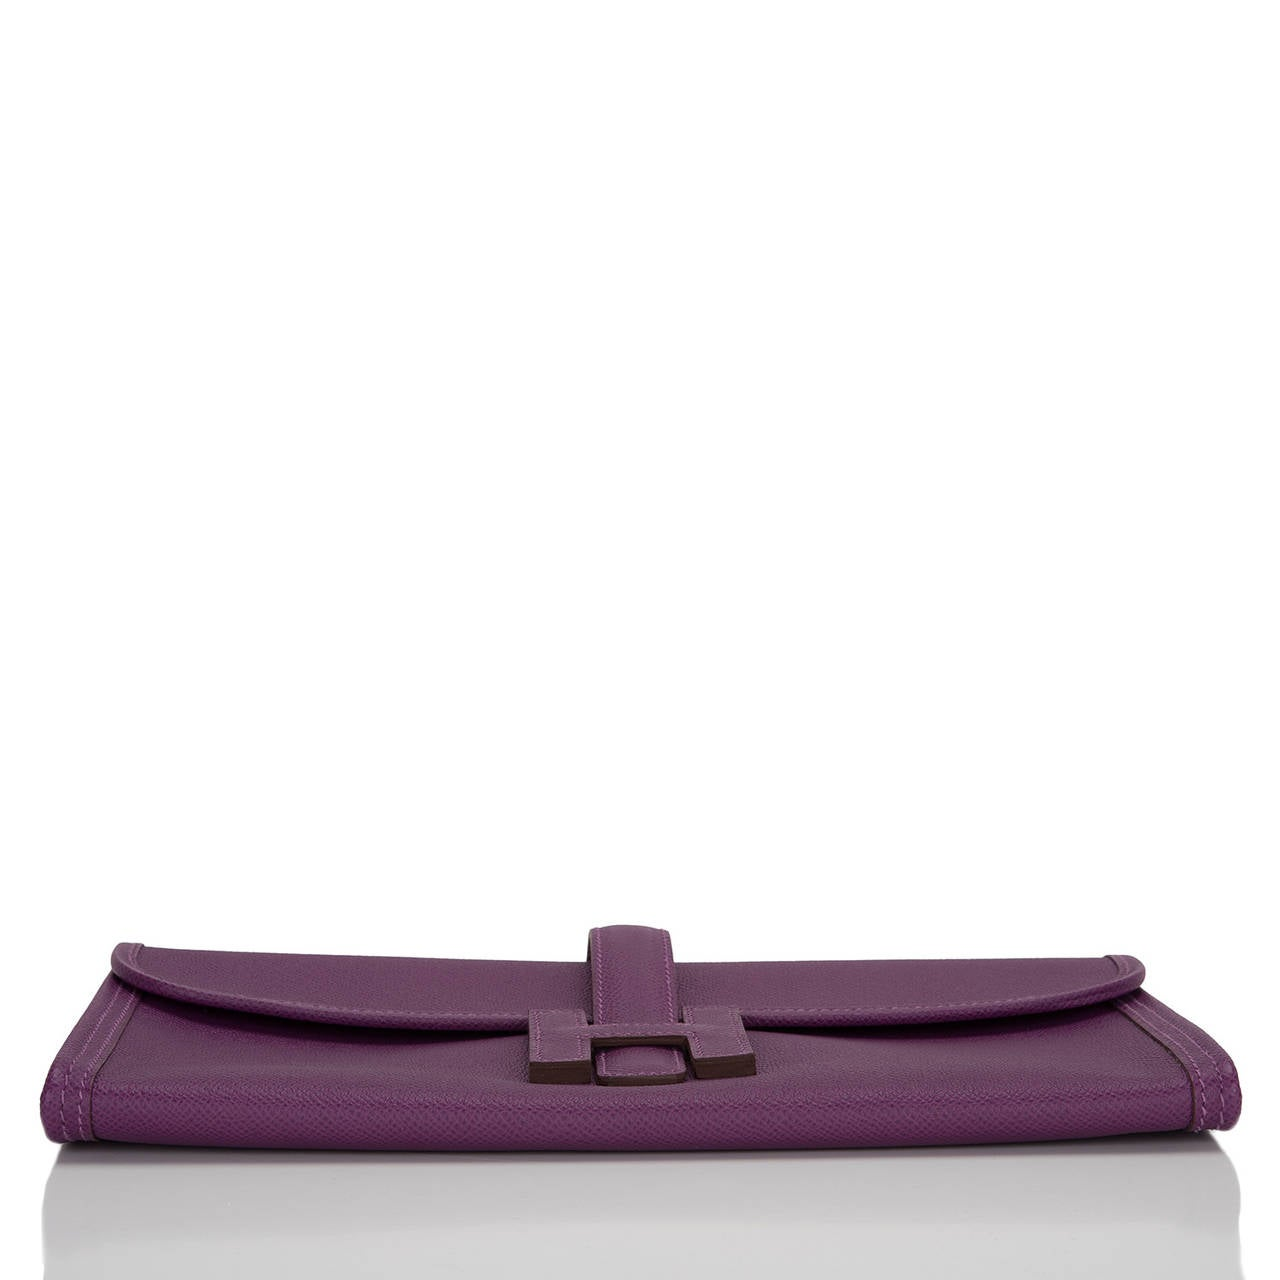 Hermes Anemone Epsom Jige Elan Clutch 29cm In New never worn Condition For Sale In New York, NY